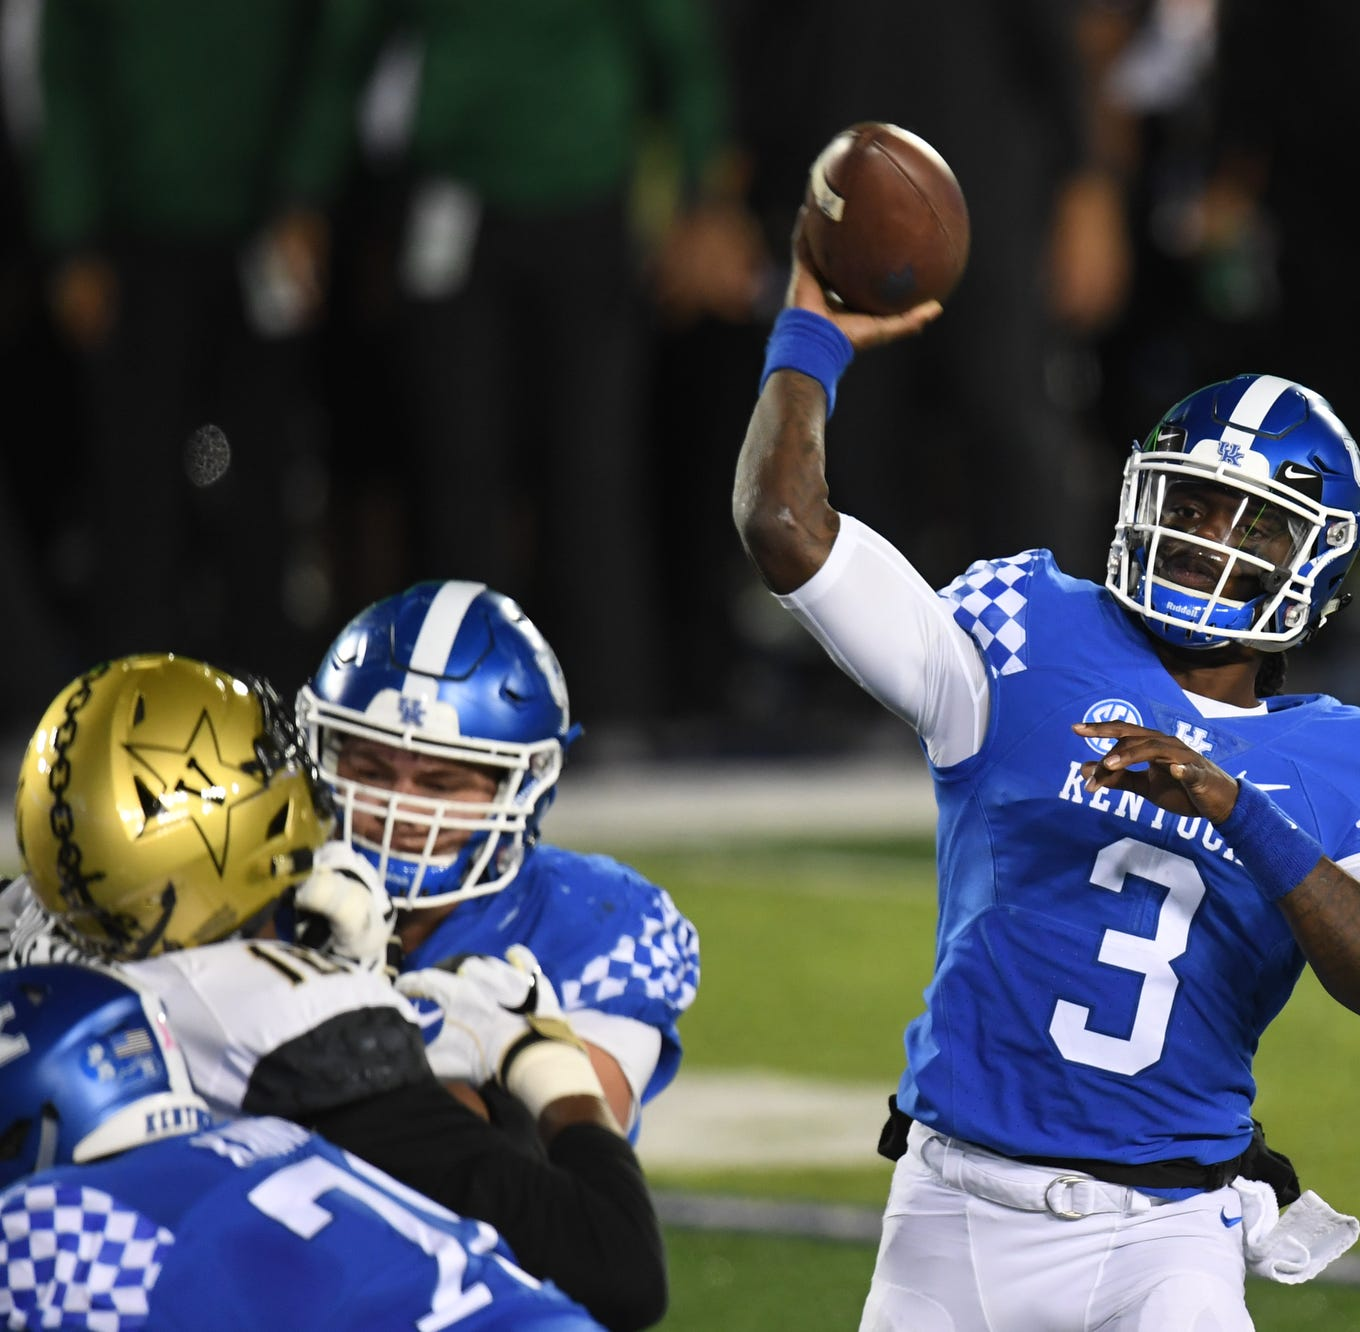 For Kentucky to stay in SEC East race, passing game has to improve